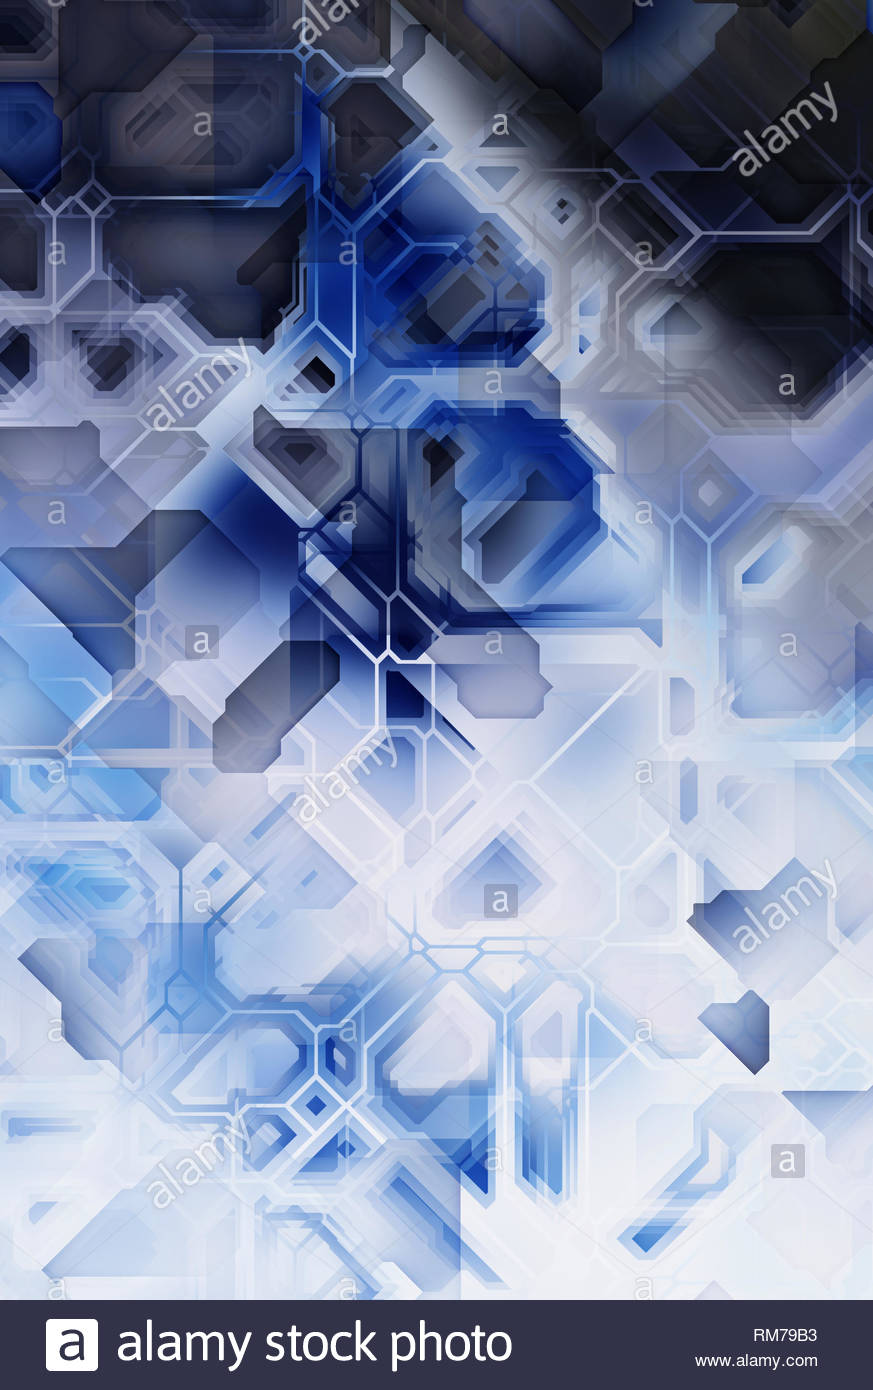 blue, black and white abstract futuristic background - Stock Image